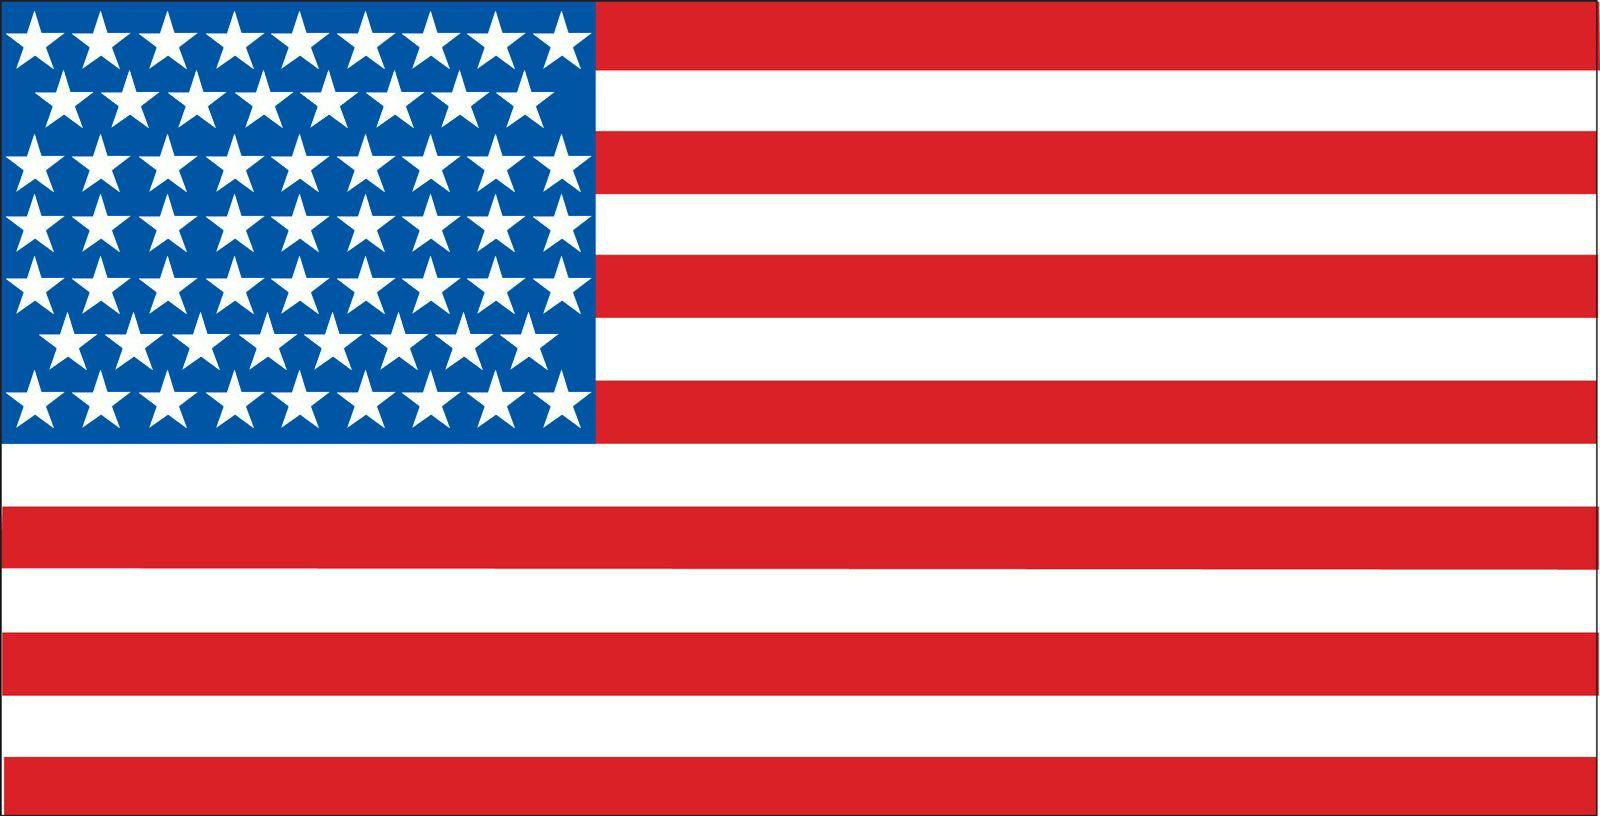 USA-Flag-HD-Wallpapers-Images